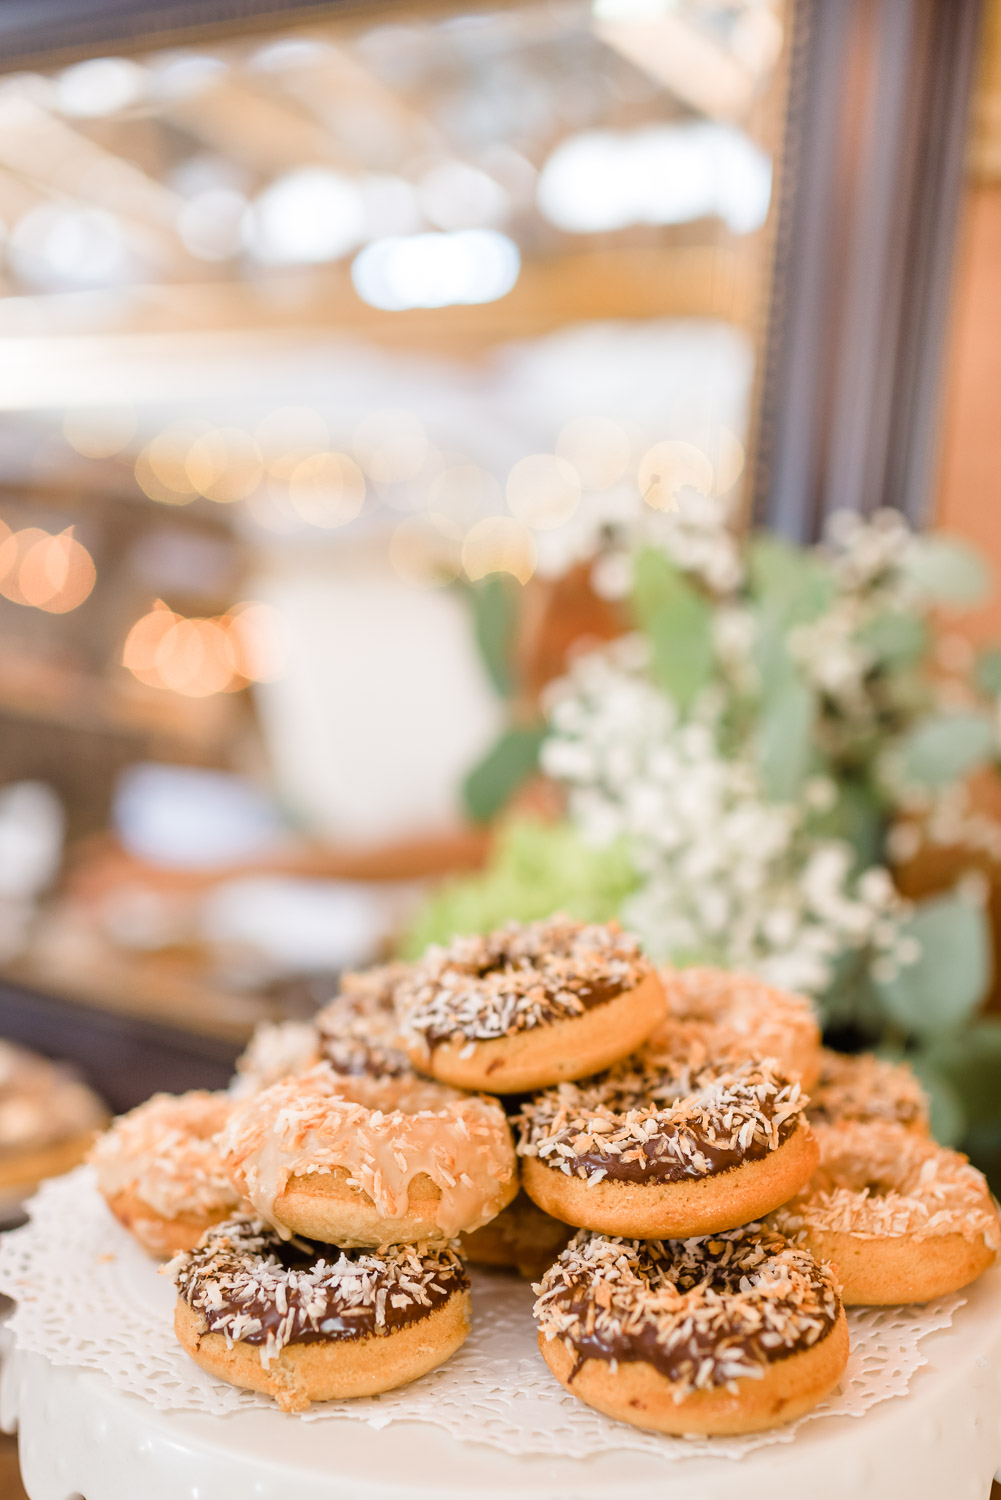 vegan donuts from Cashew Chattanooga as wedding cake. And boy feeding bride a donut